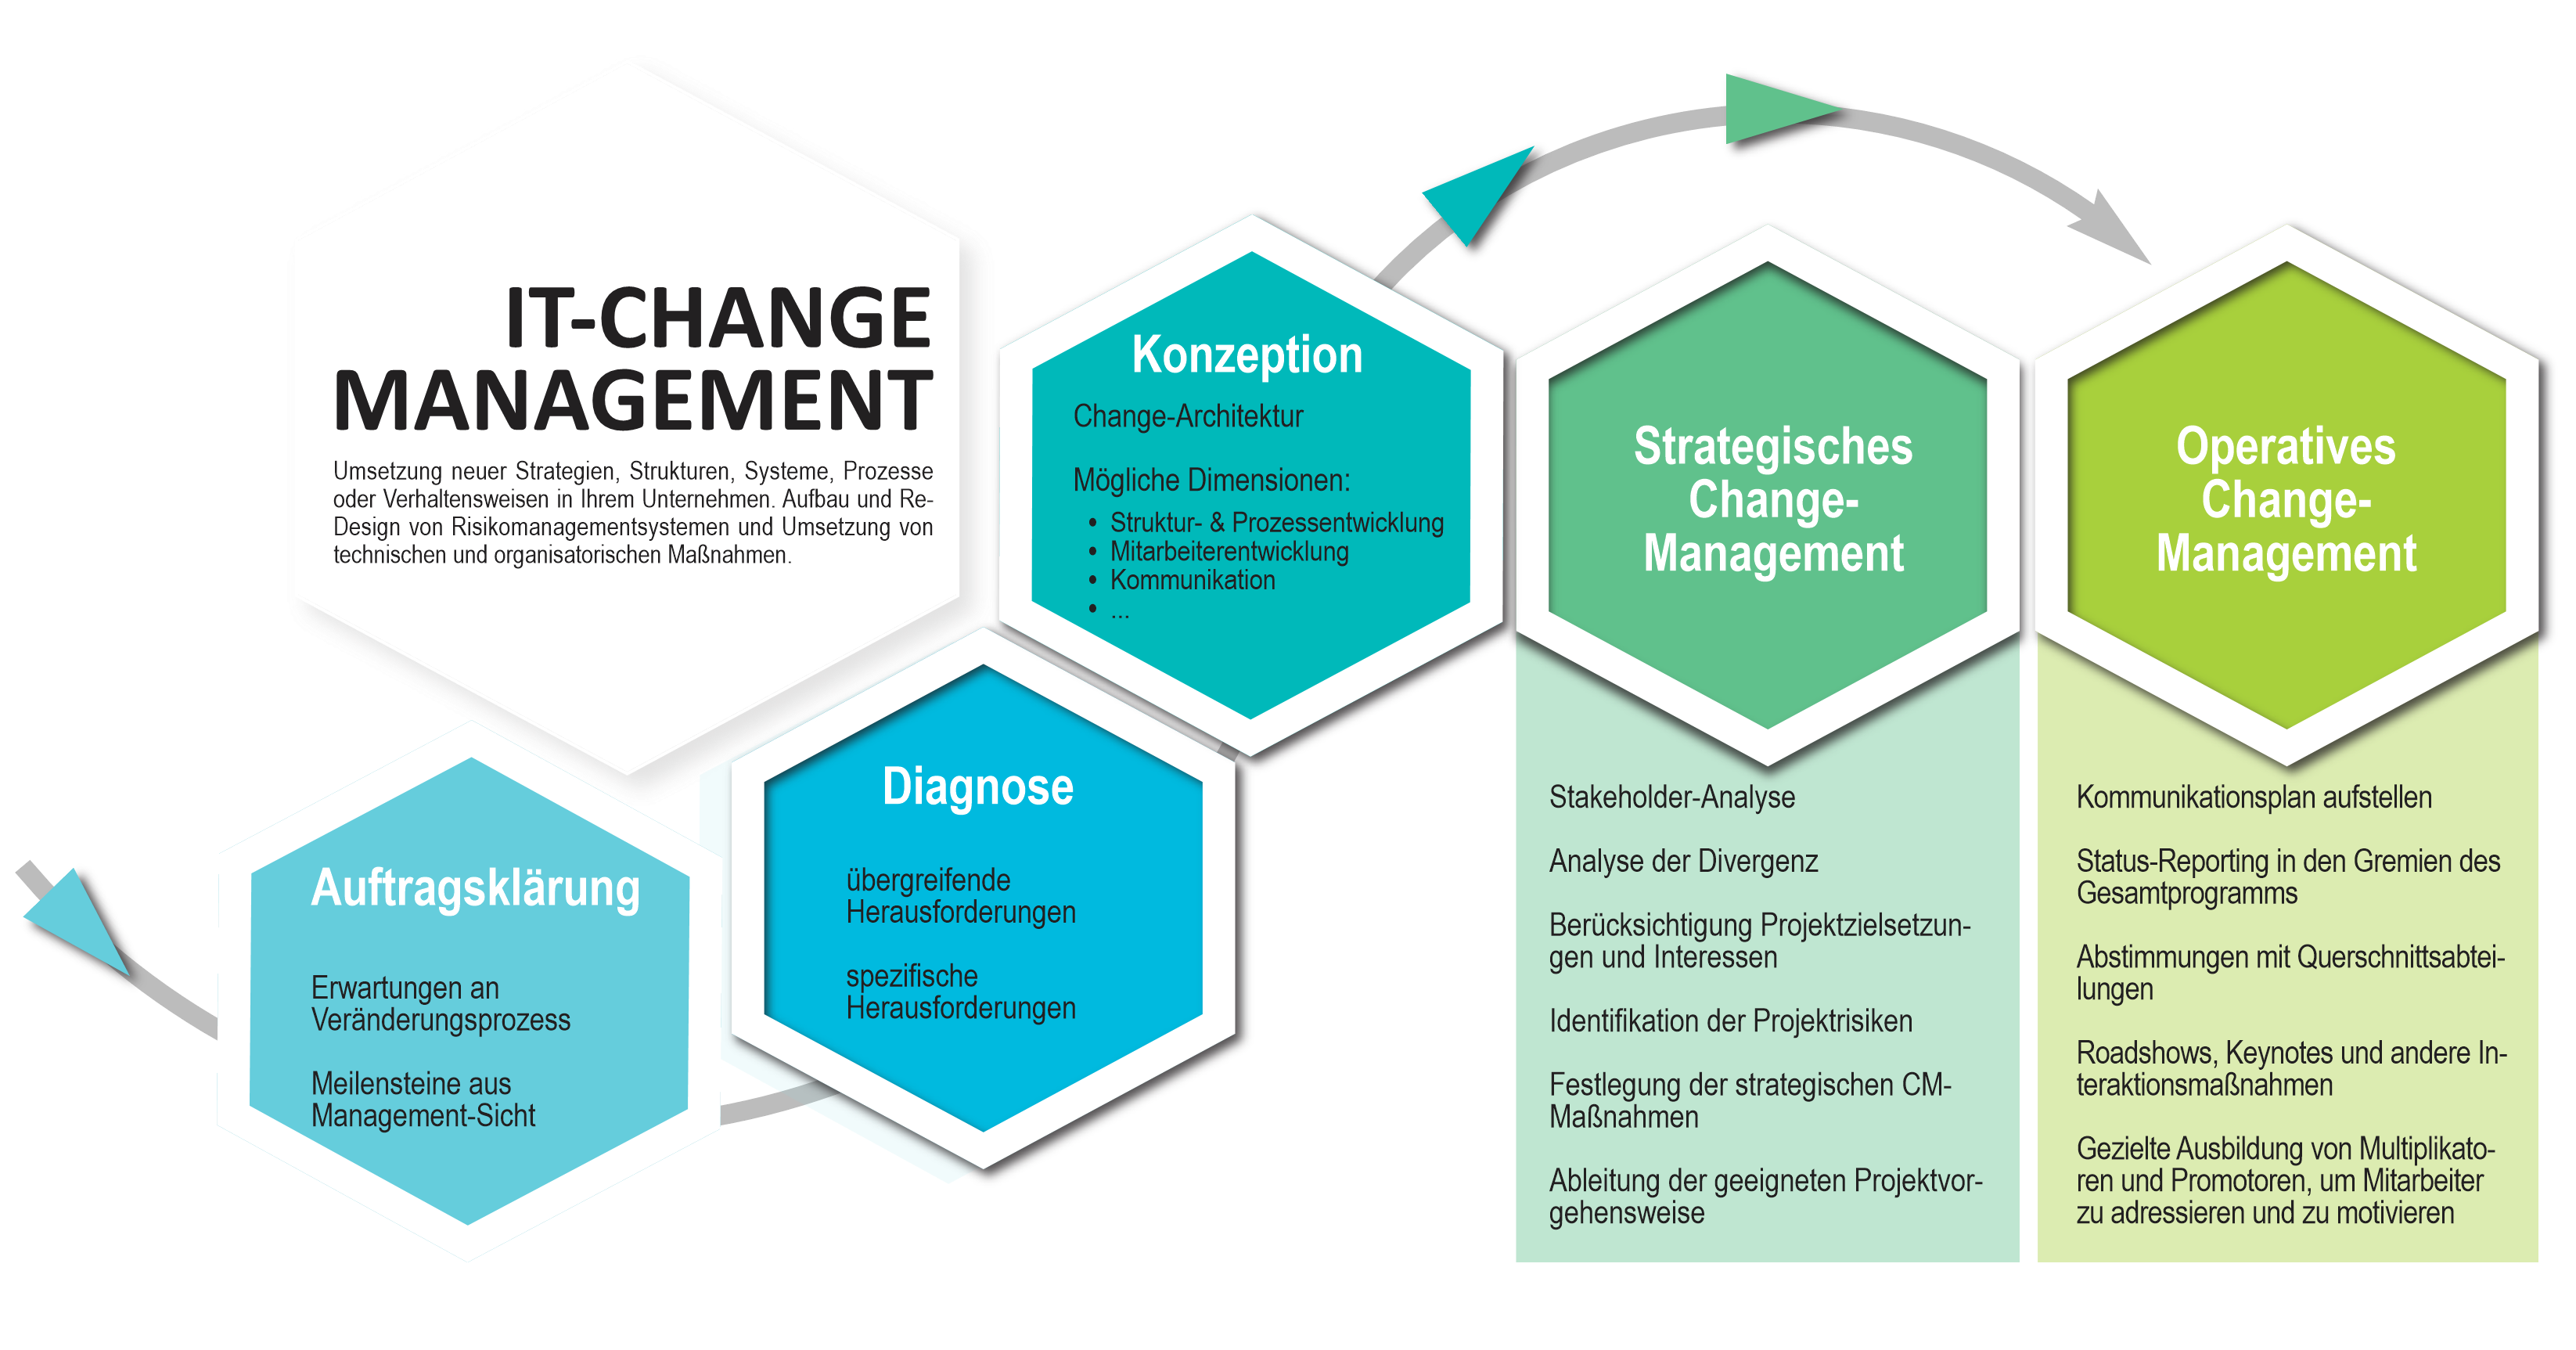 IT-Change-Management